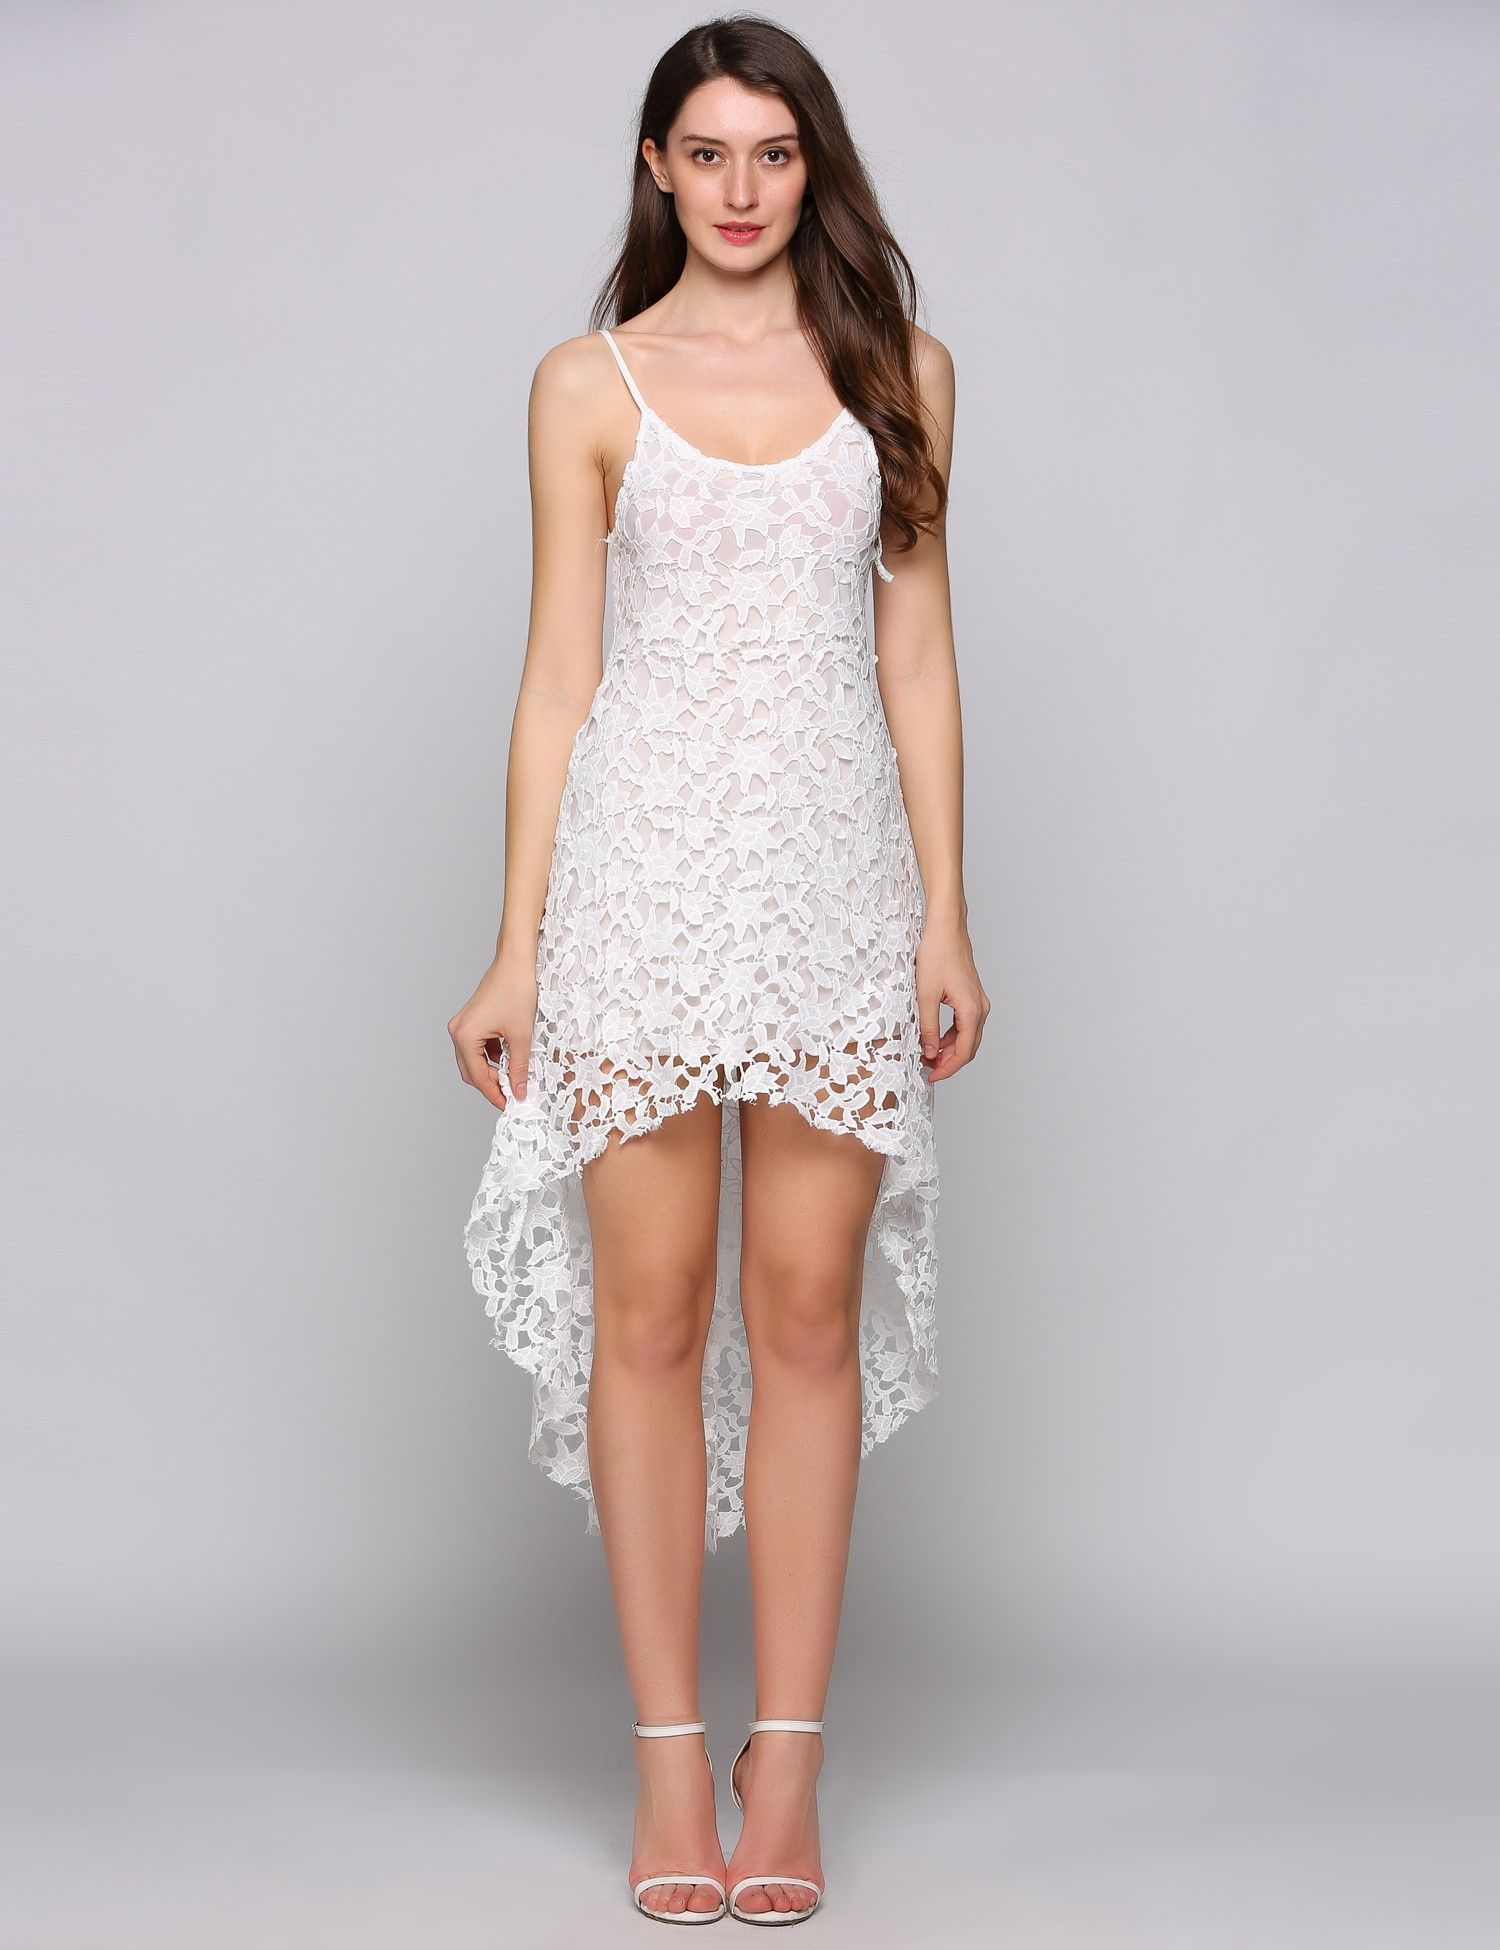 9cce43cb7dc Spaghetti Strap Sleeveless Lace Hollow Out Asymmetrical Hem Going Dress  With Lining